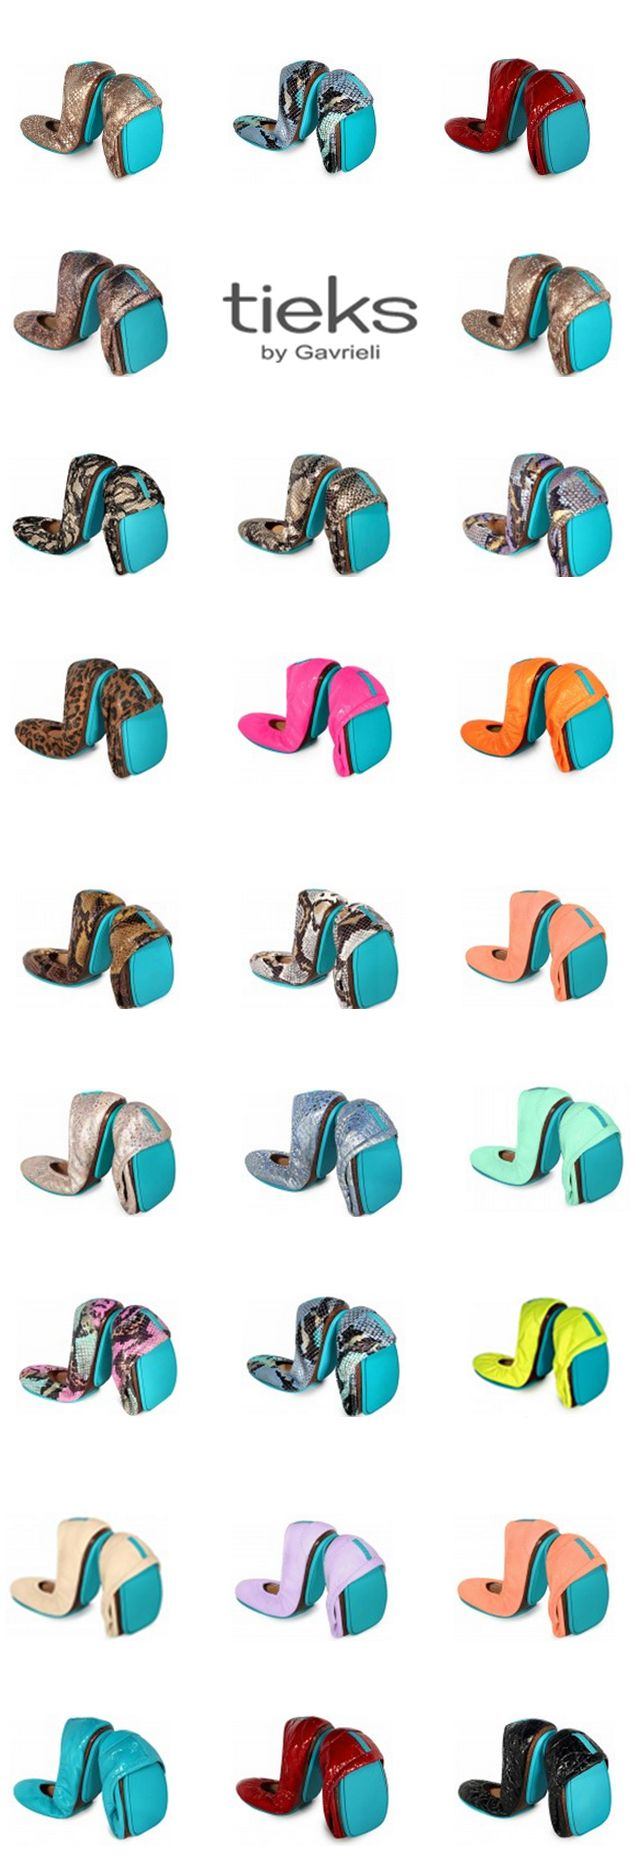 Attention: Tieks fans! For the only time this year, save up to 20% off! Click below to access the sale: And then use the invitation code:  TIEKBLUE689C. The most comfortable flats ever! Great for gifts: includes the prettiest wrapping @Tieks by Gavrieli http://rstyle.me/n/c8pixn2bn